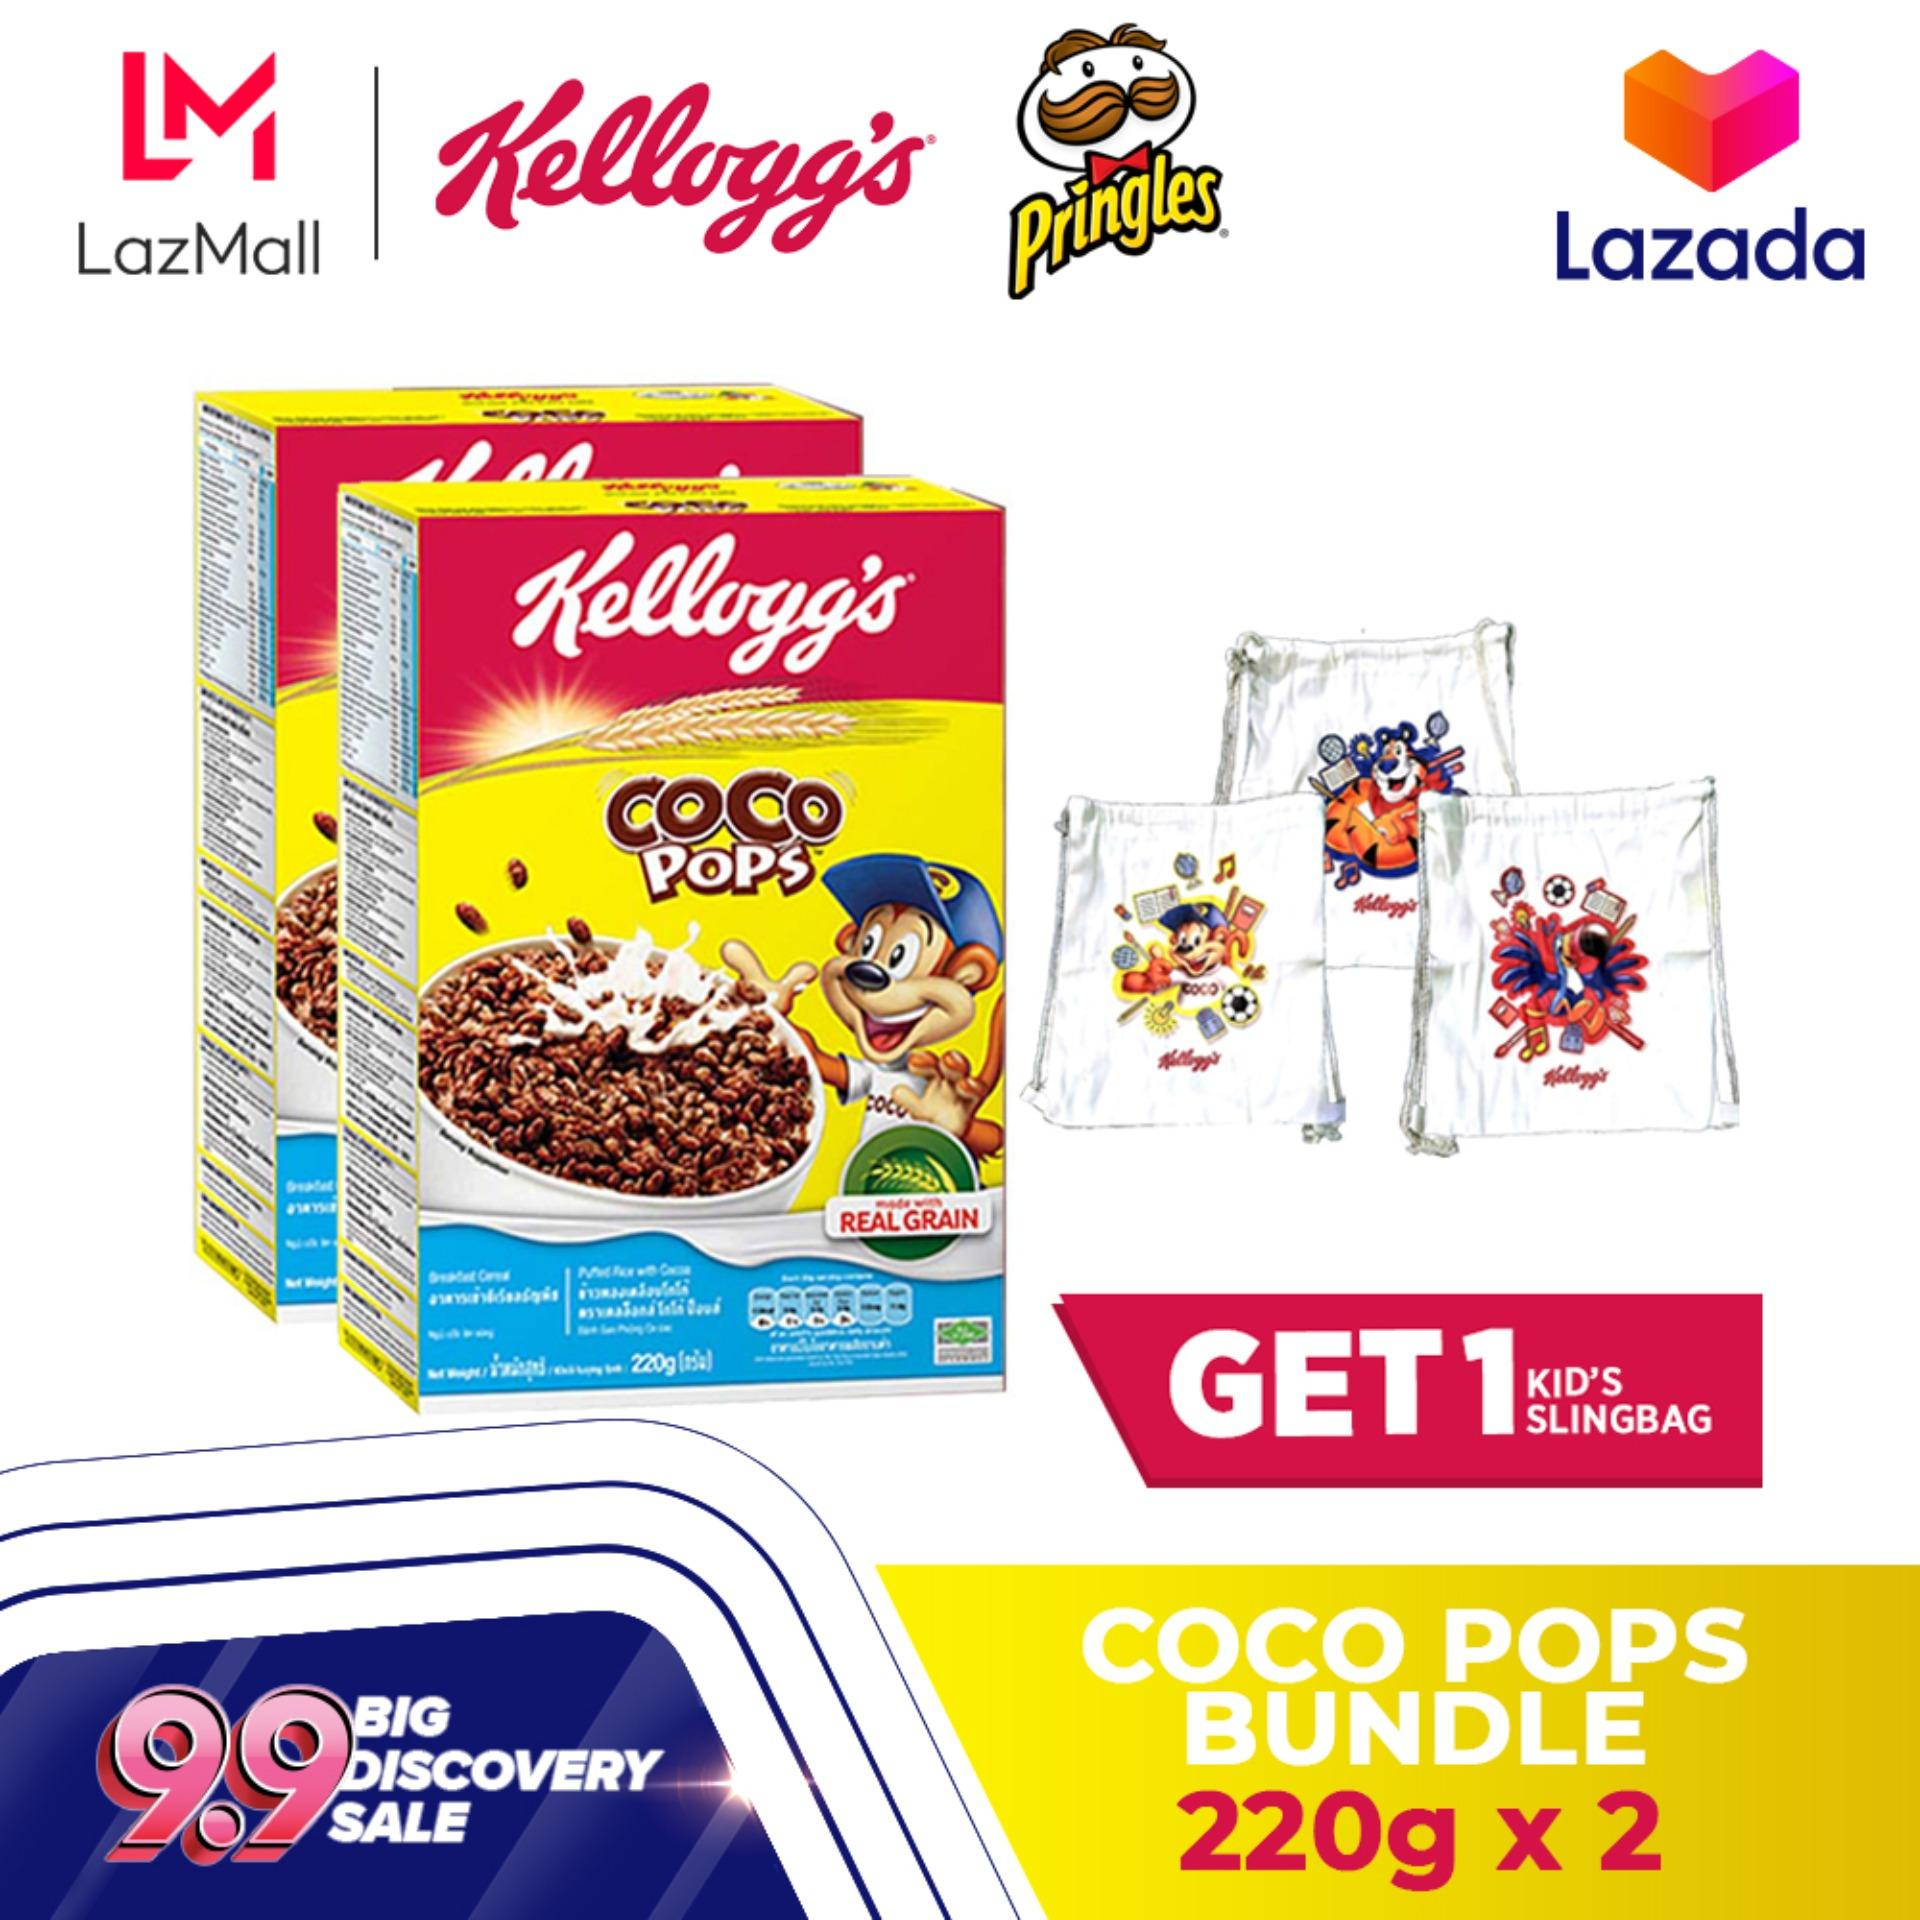 KELLOGG'S® Coco Pops 220g x 2 with FREE Sling Bag